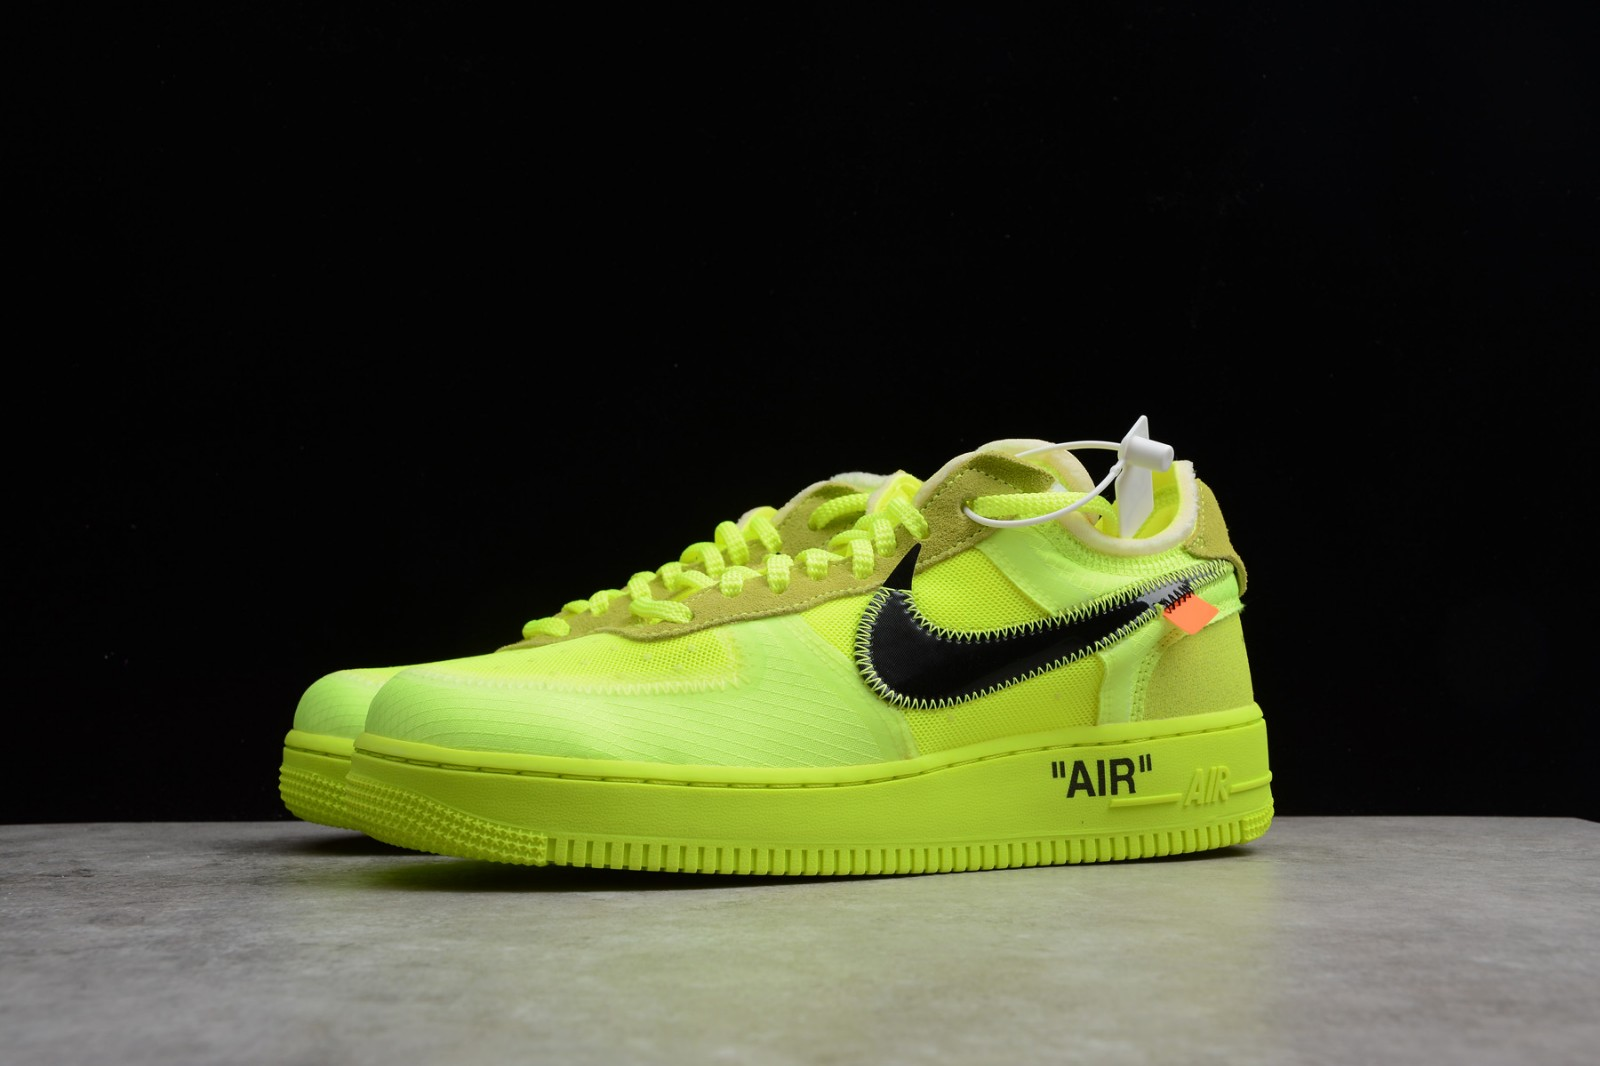 Off White x Nike Air Force 1 Low Volt AO4606 700